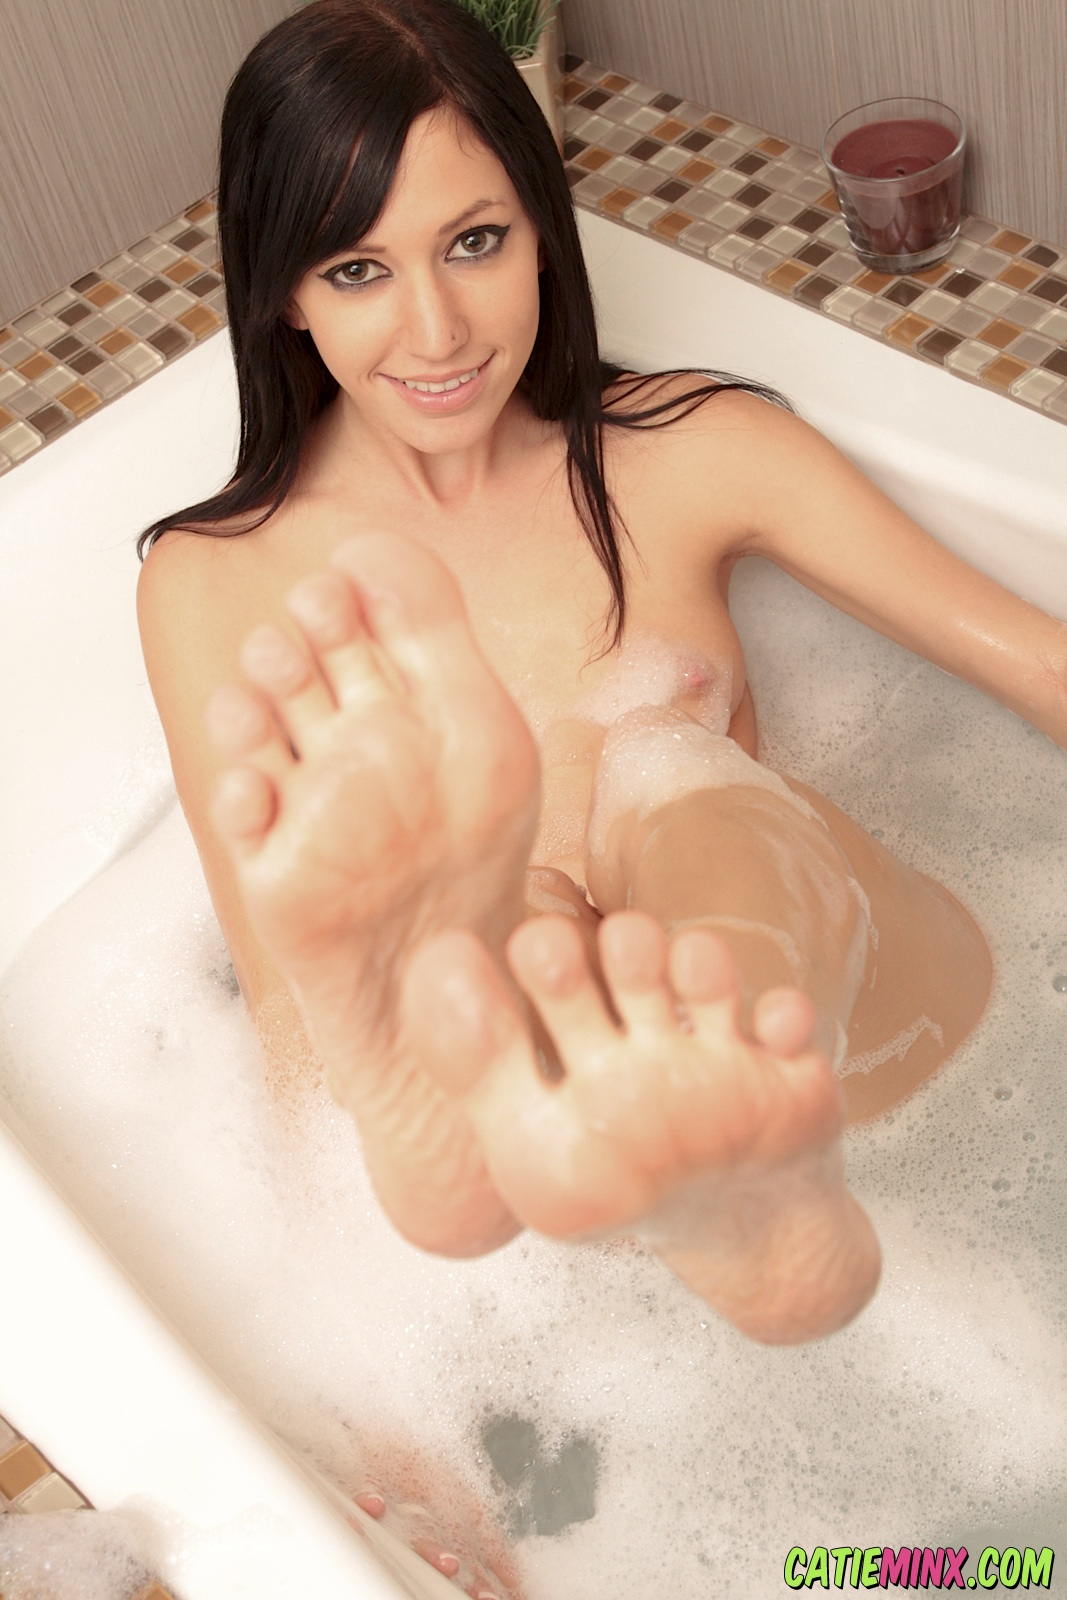 Remarkable, naked girls masturbating with feet question interesting